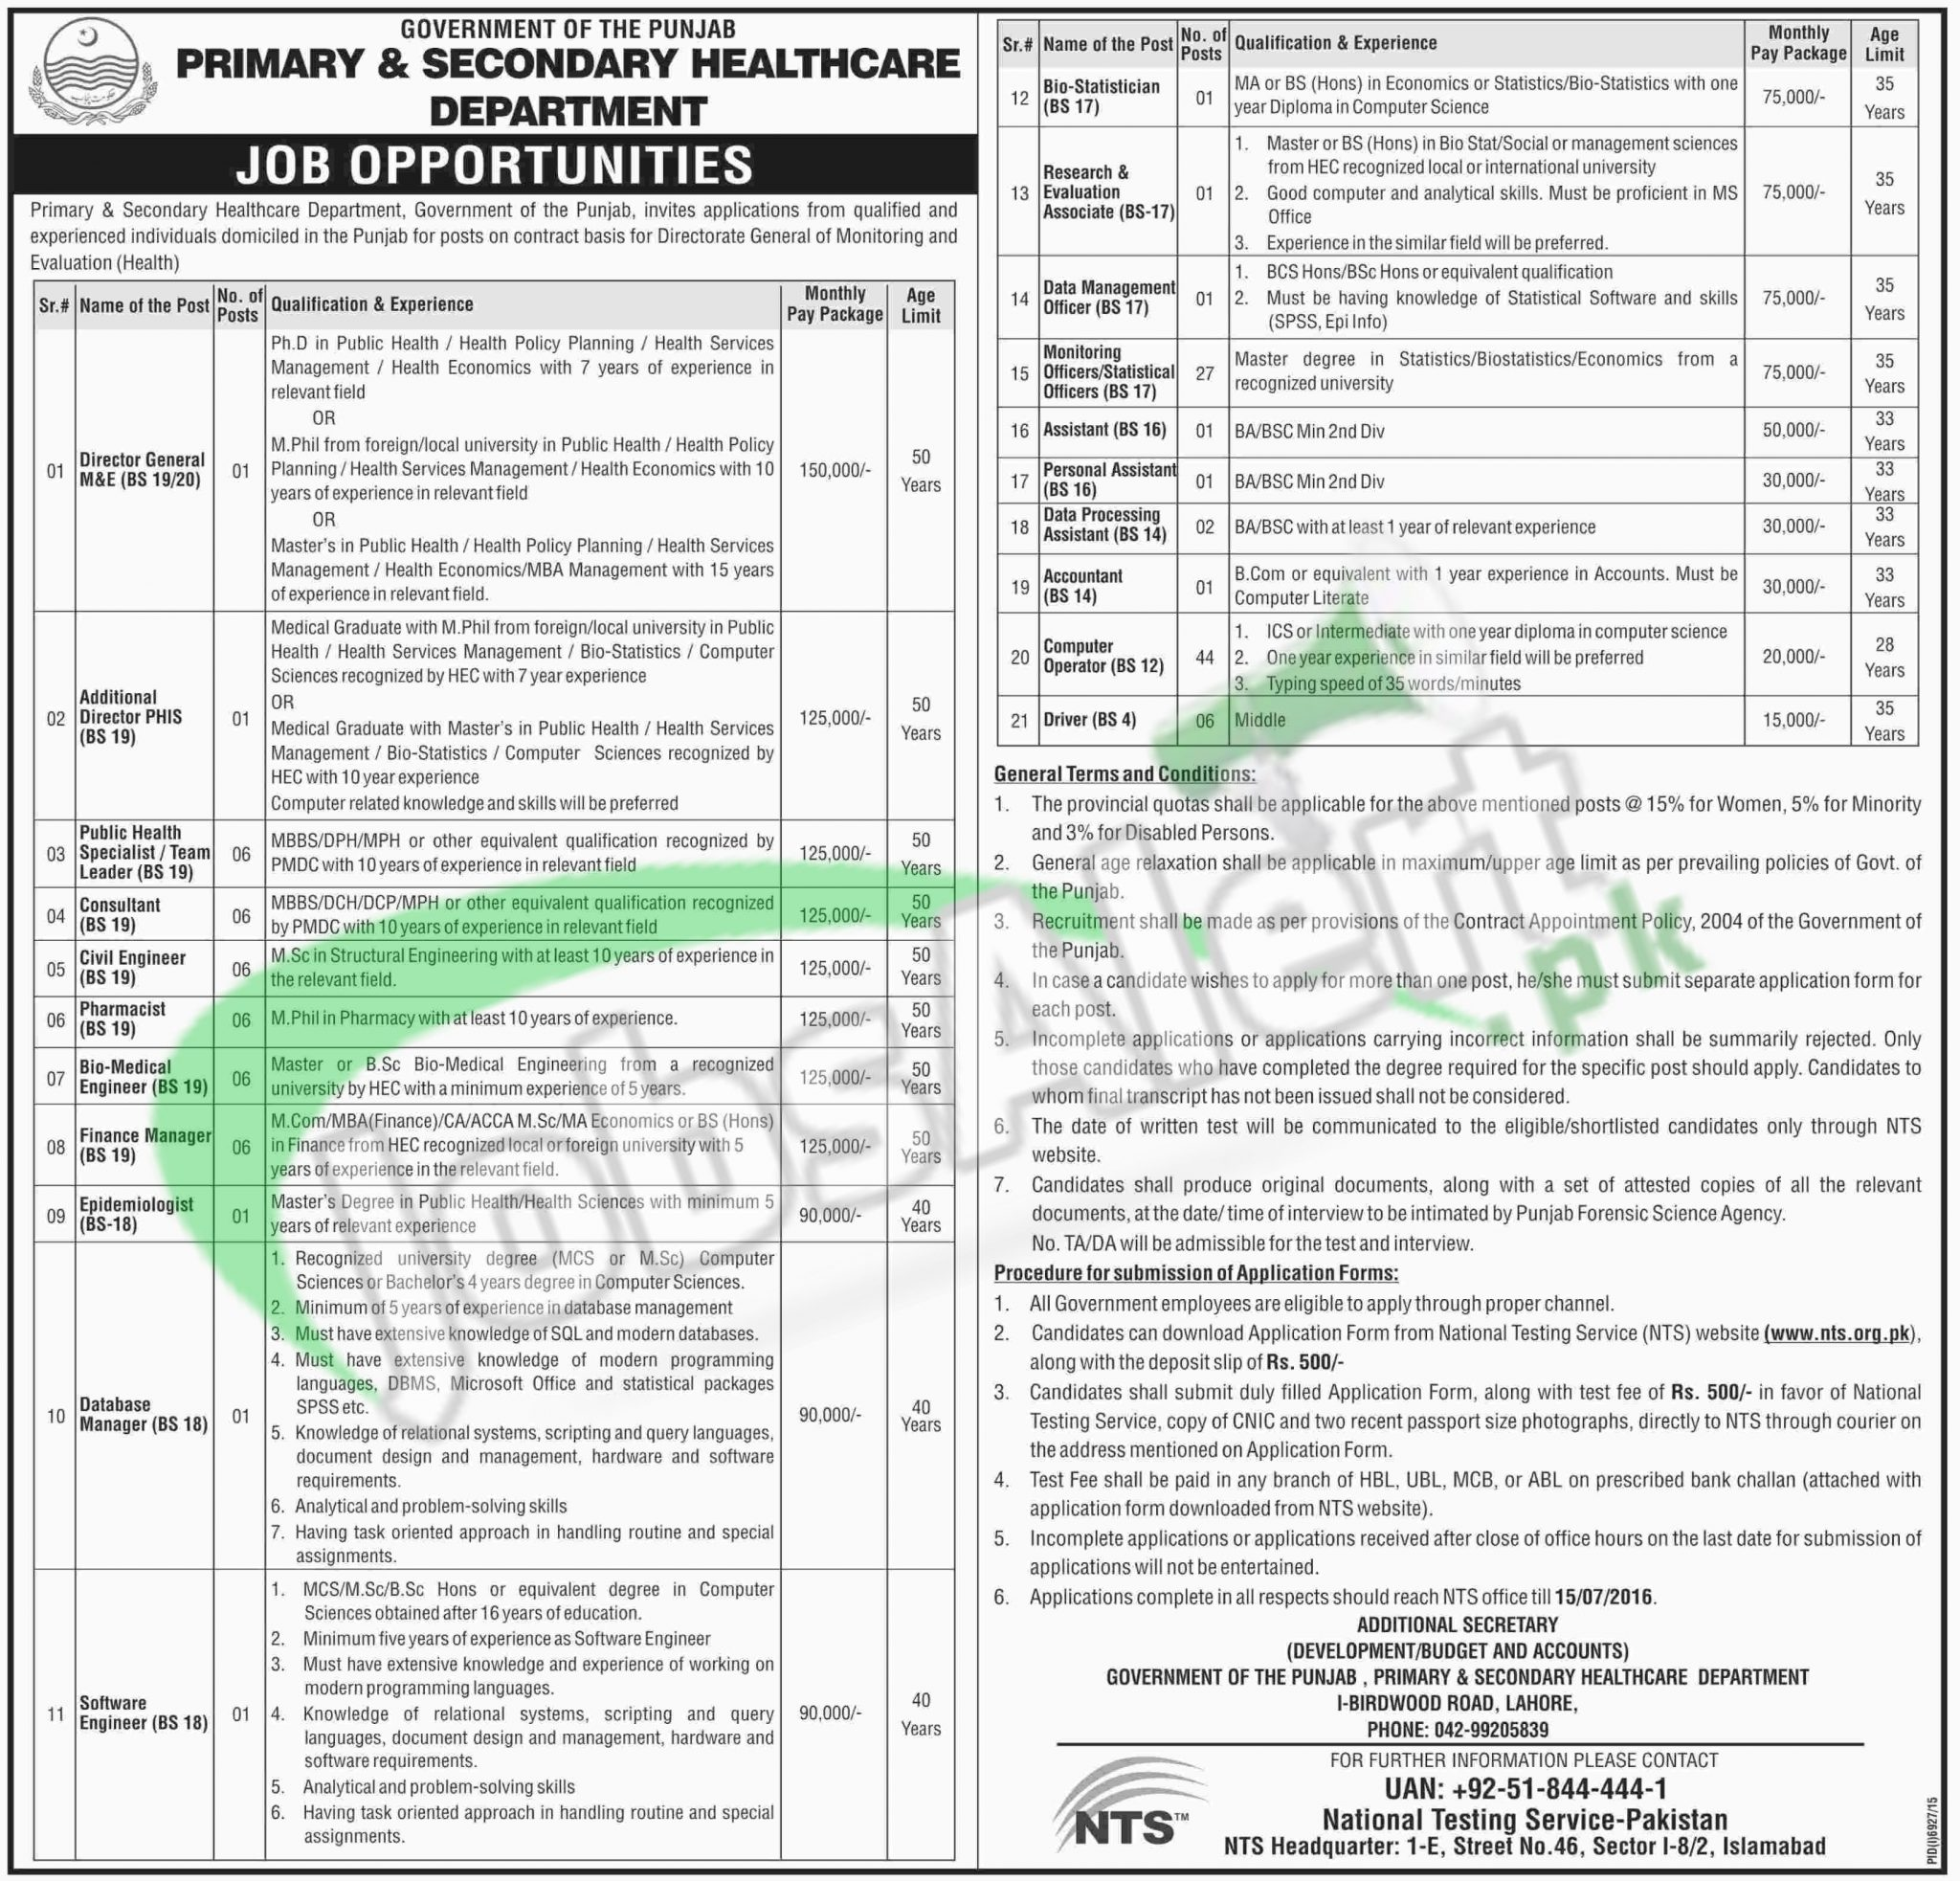 Primary & Secondary Healthcare Department Jobs